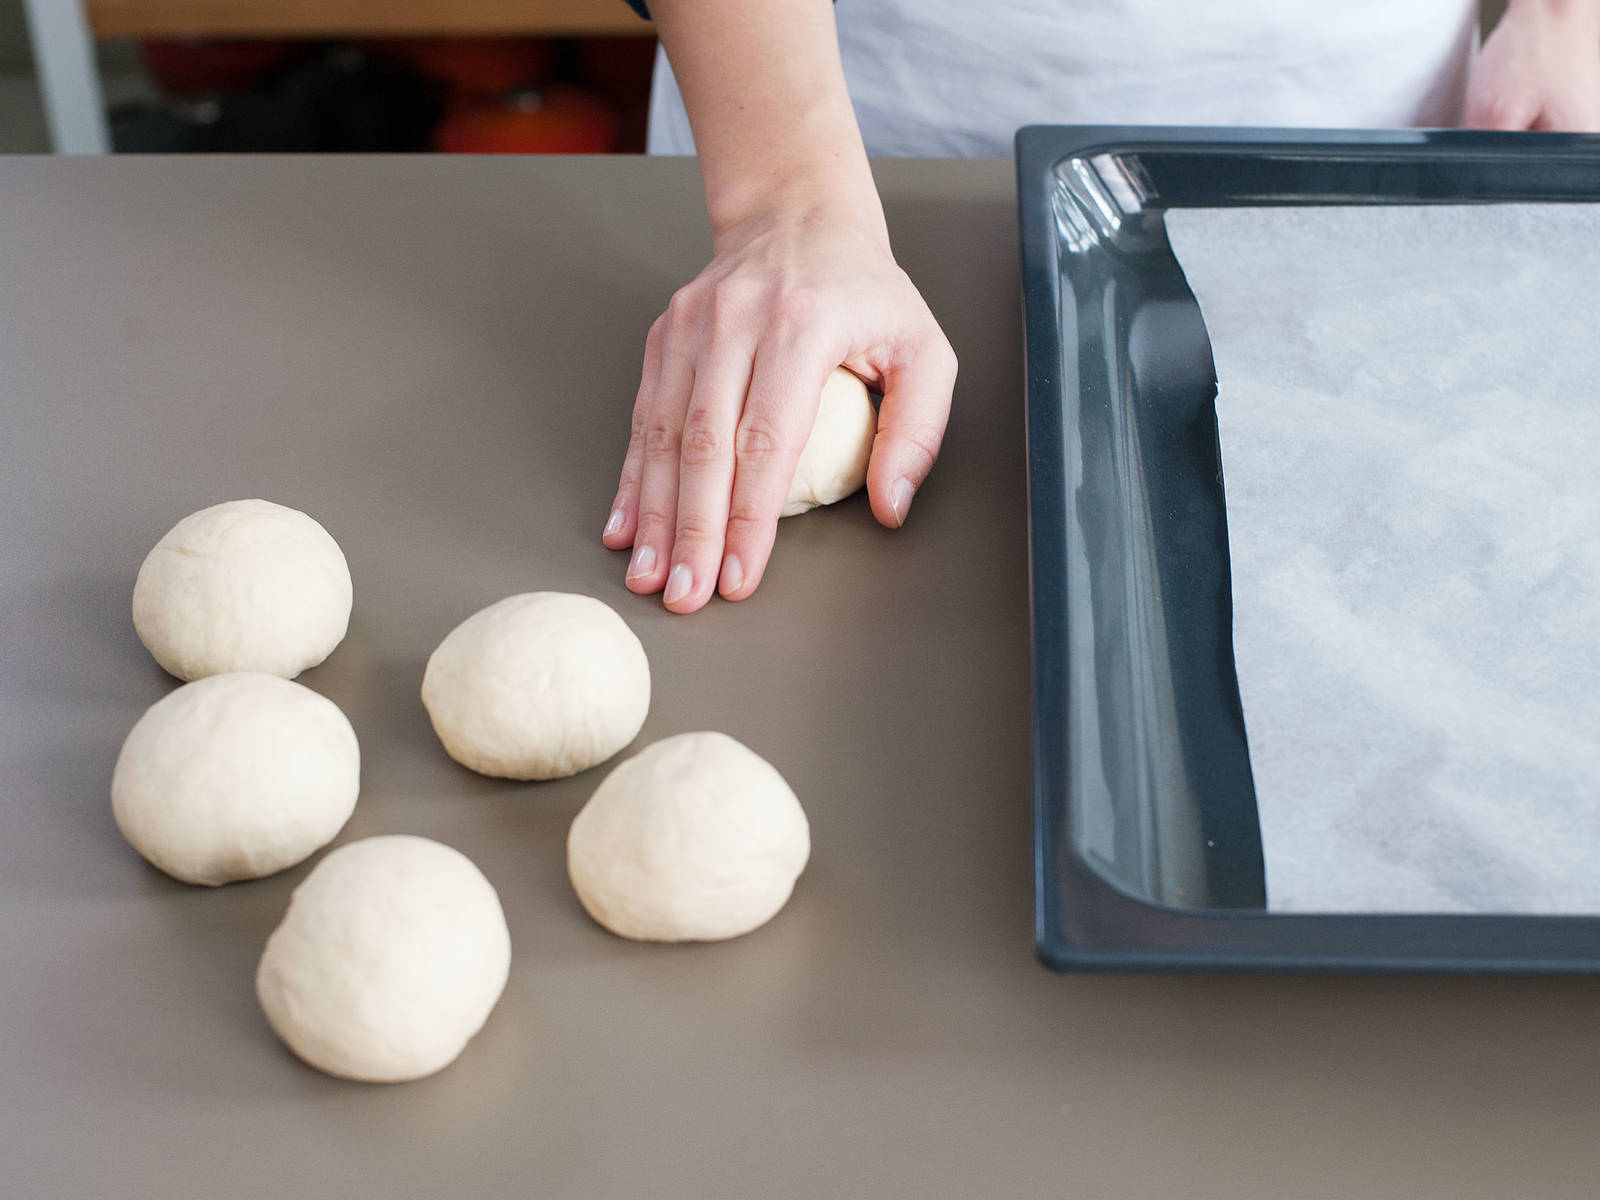 Then, roll dough pieces into smooth balls, transfer back to parchment-lined baking sheet, and cover with a damp kitchen towel. Let rise for another approx. 30 min. in a warm place.